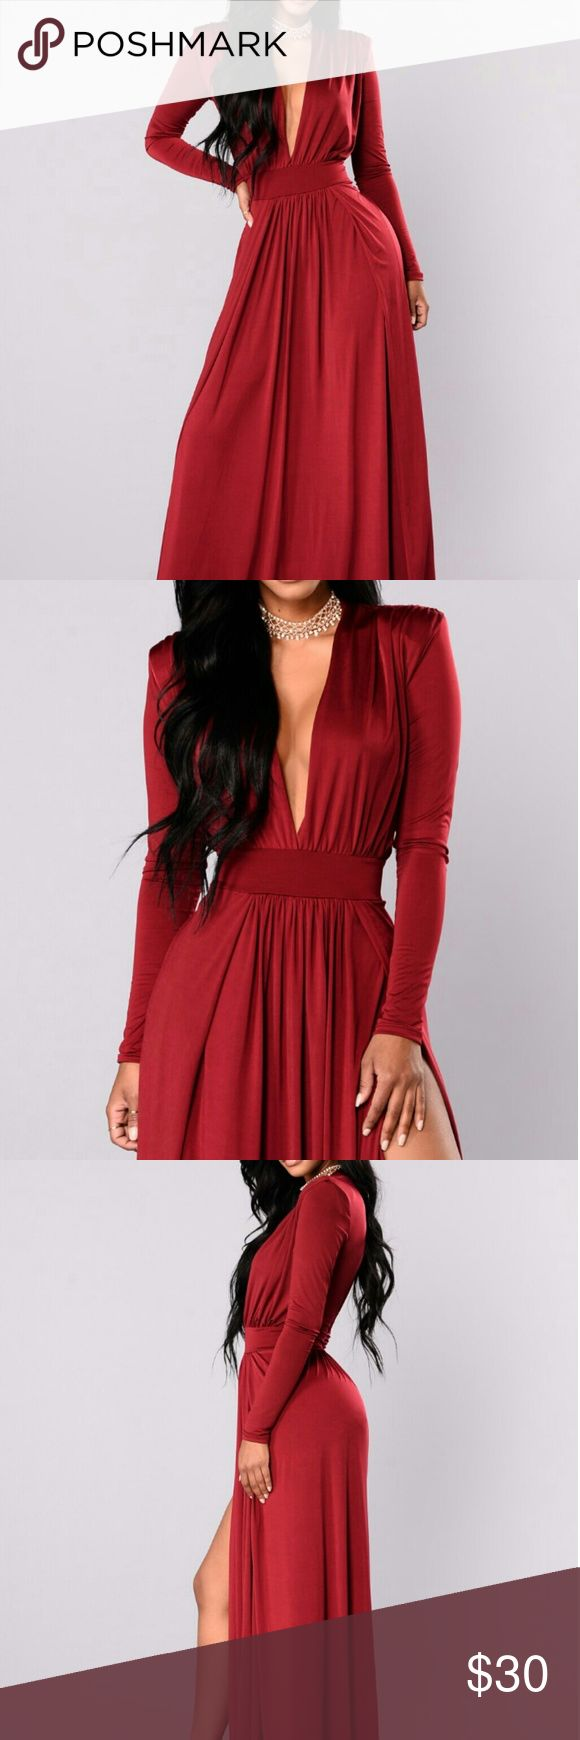 Fashion Nova Spree Dress - Burgundy New with tags; Never worn; Still sitting in original packaging.   Beautiful dress, but I just don't have an occasion to wear it to!  I wanted to return it to the store, but I missed the 30 day return policy unfortunately :(  Please check out the original site for more information about the dress: https://www.fashionnova.com/products/spree-dress-burgundy Fashion Nova Dresses Maxi